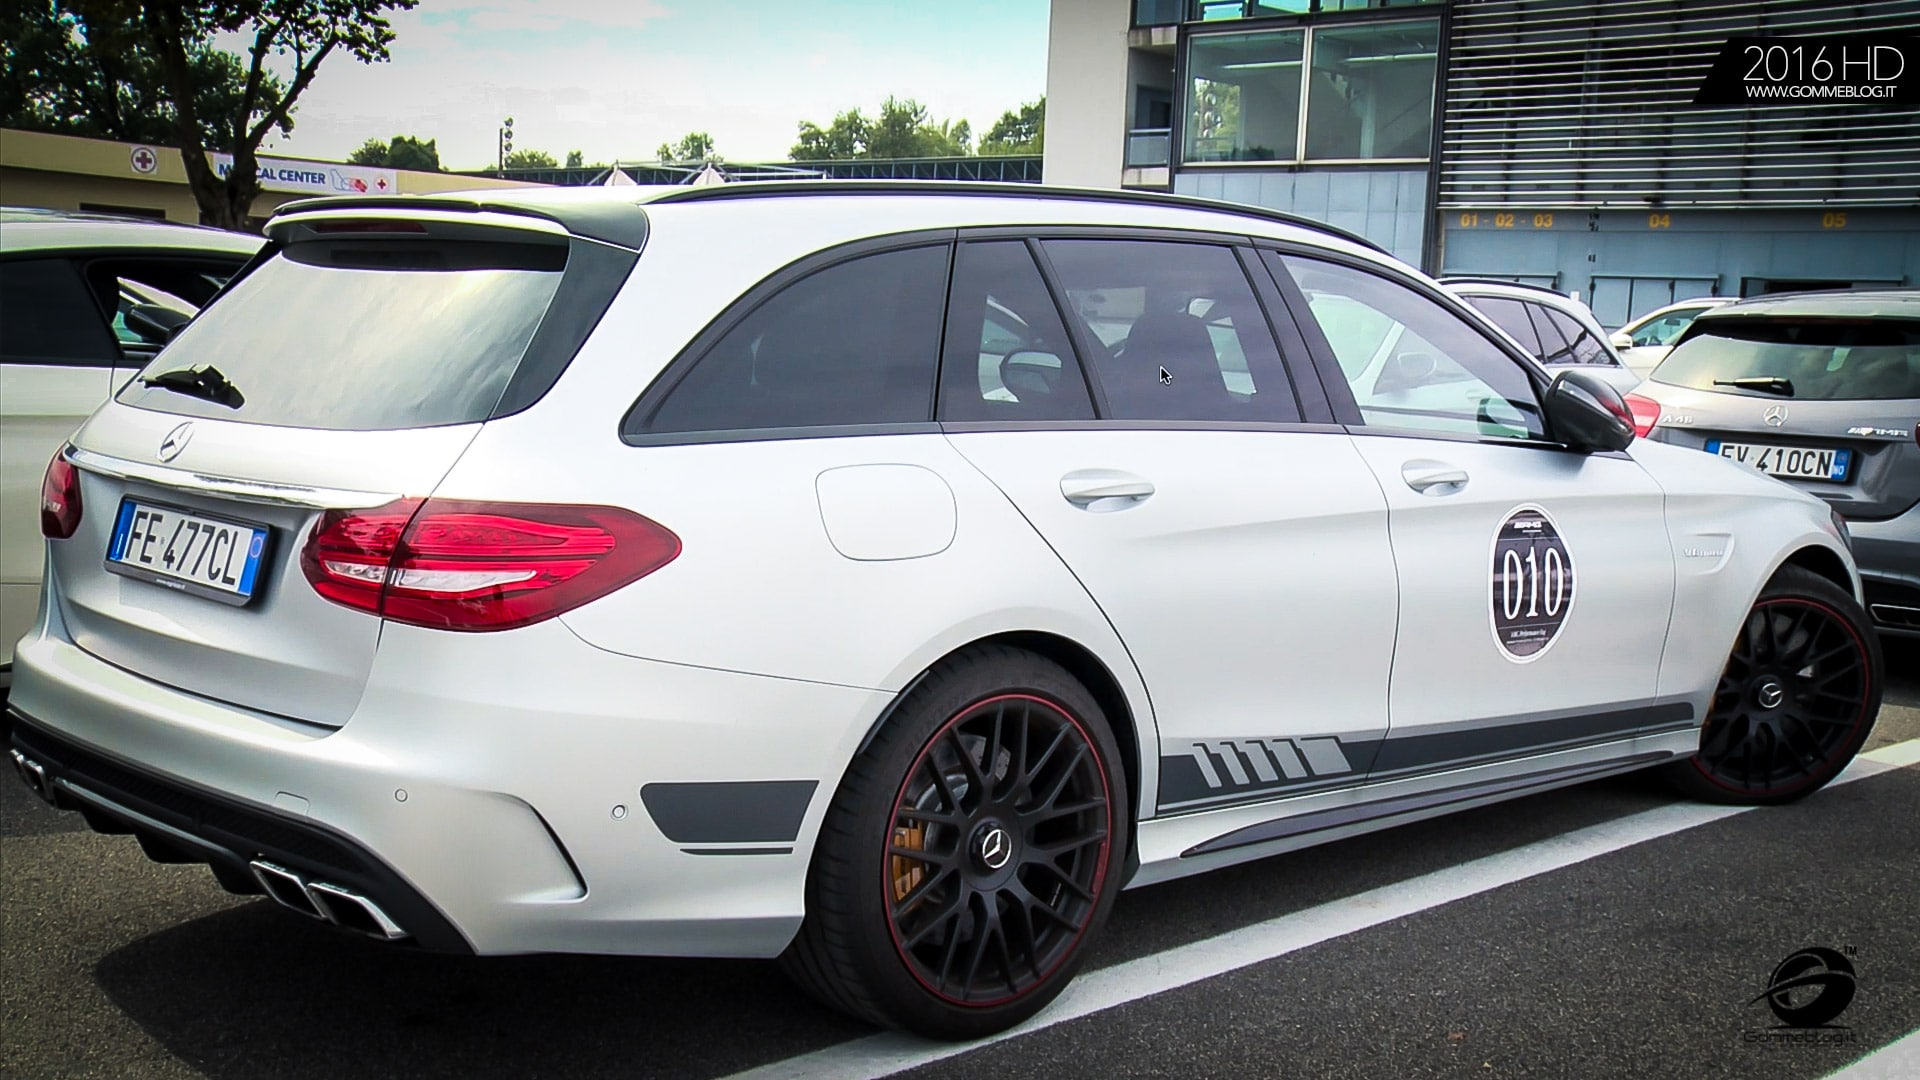 AMG Performance Day: Scende in pista l'Italia High Performance [VIDEO]